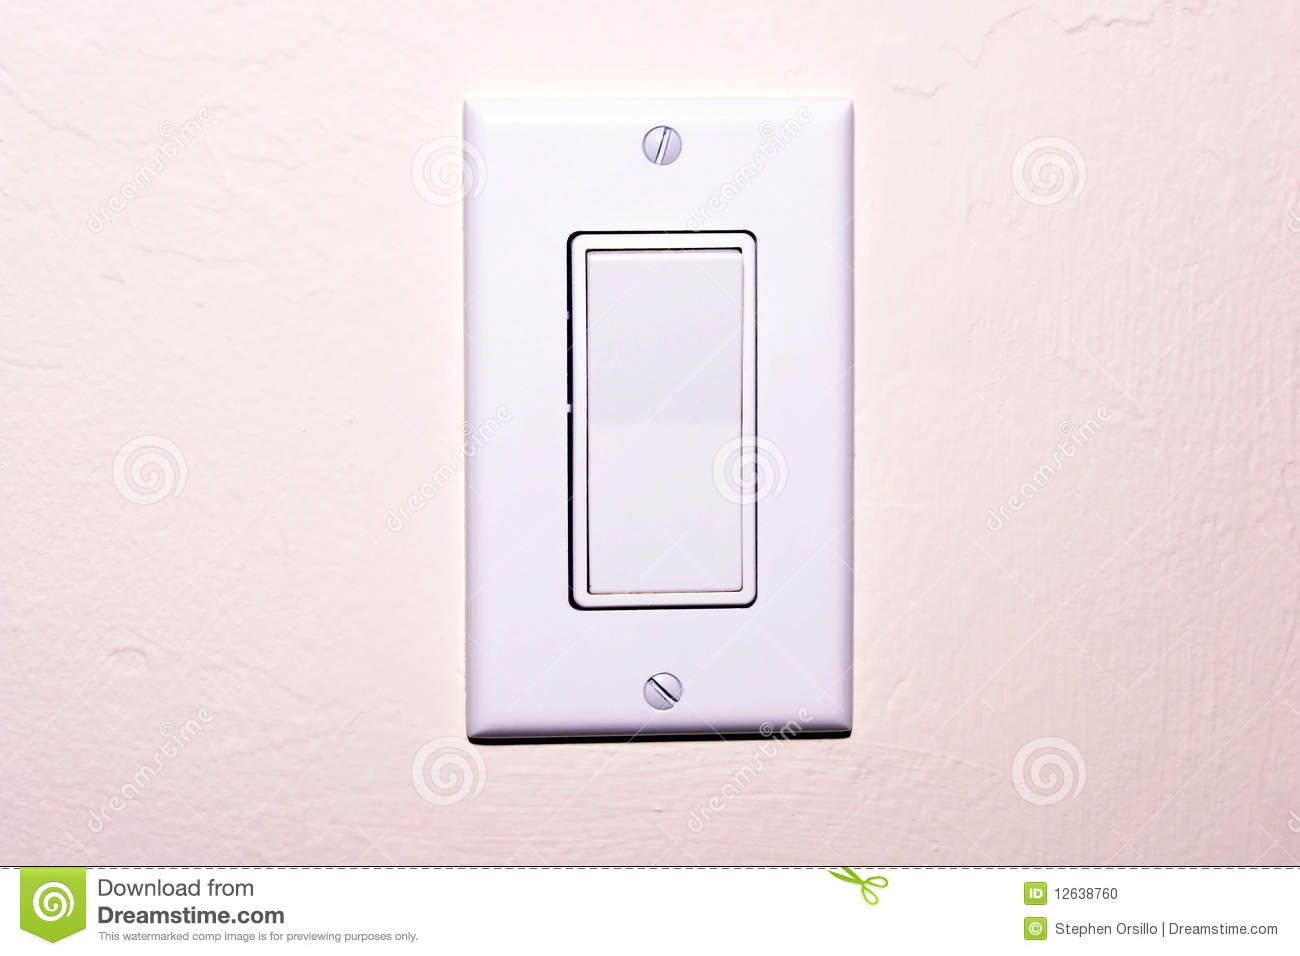 Modern light switch stock photo. Image of architecture - 12638760